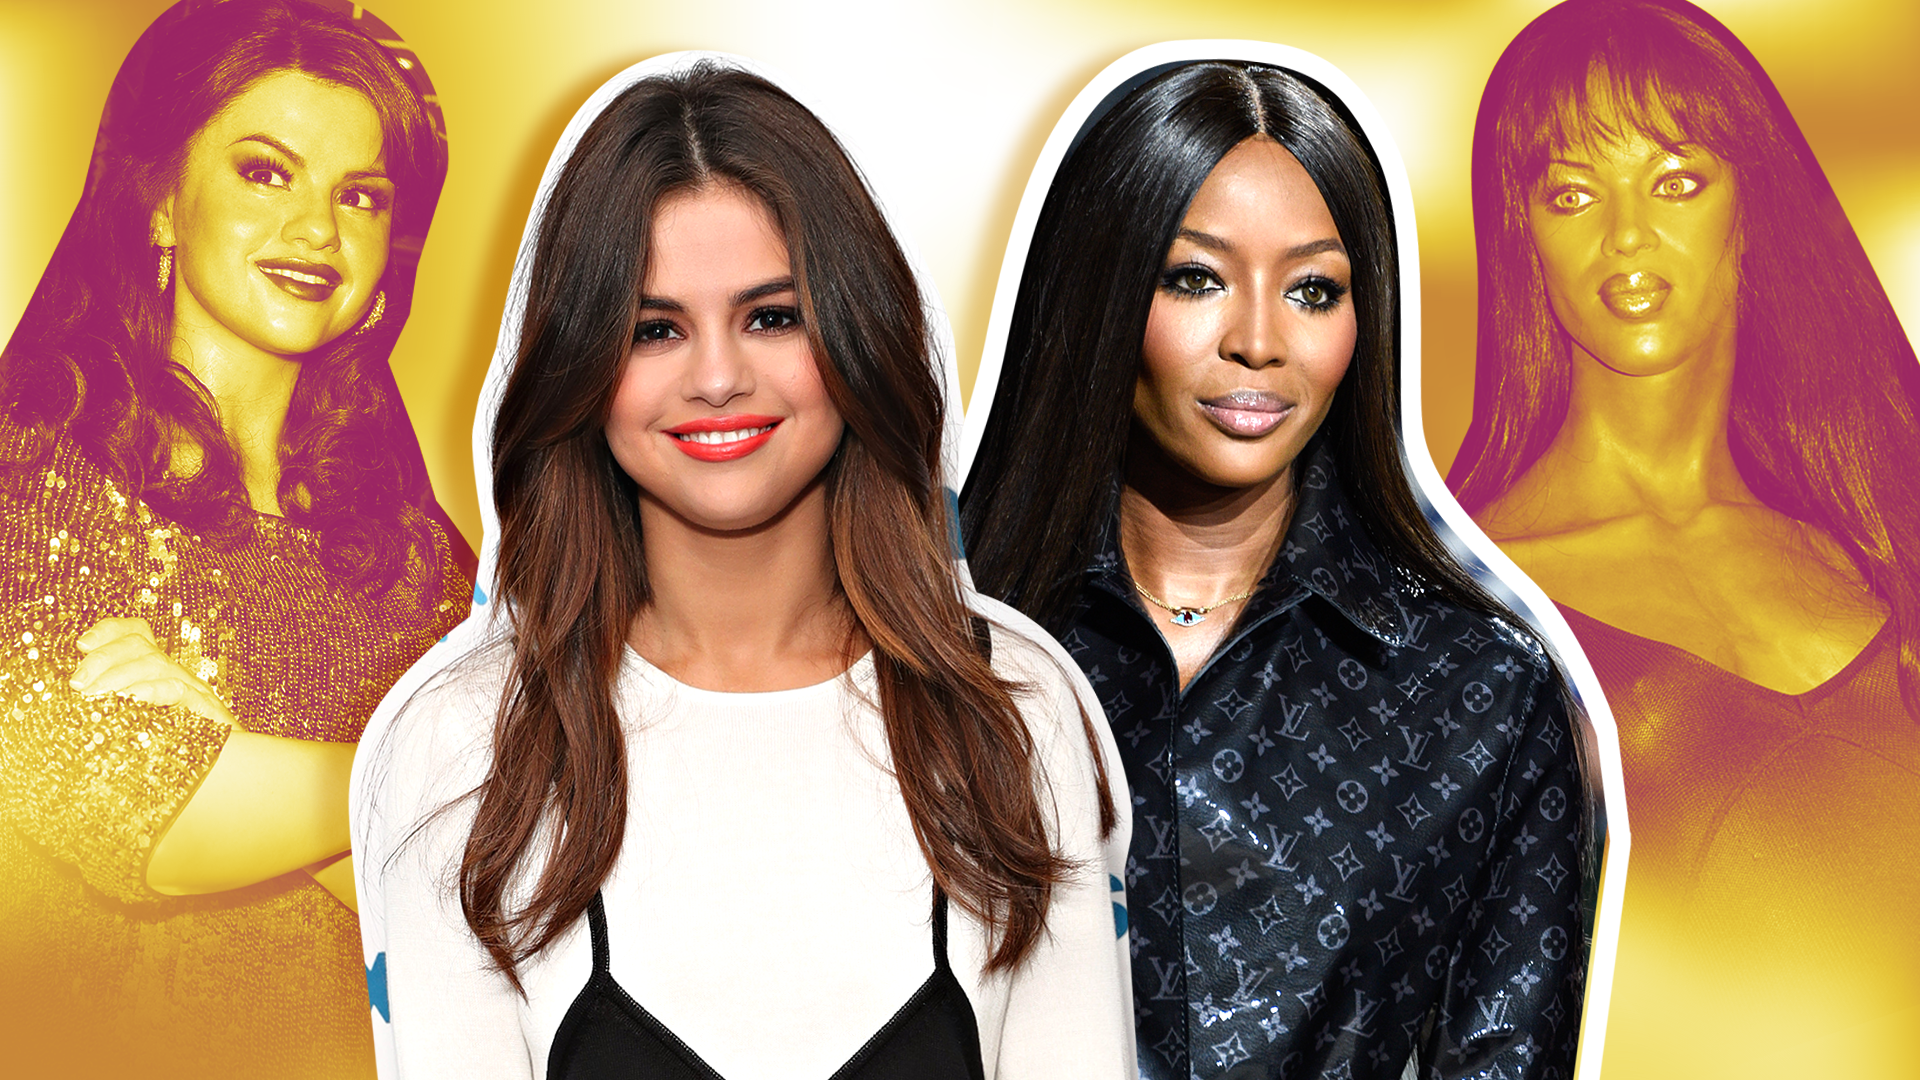 The 20 Absolute Worst Celebrity Wax Figures We've Ever Seen